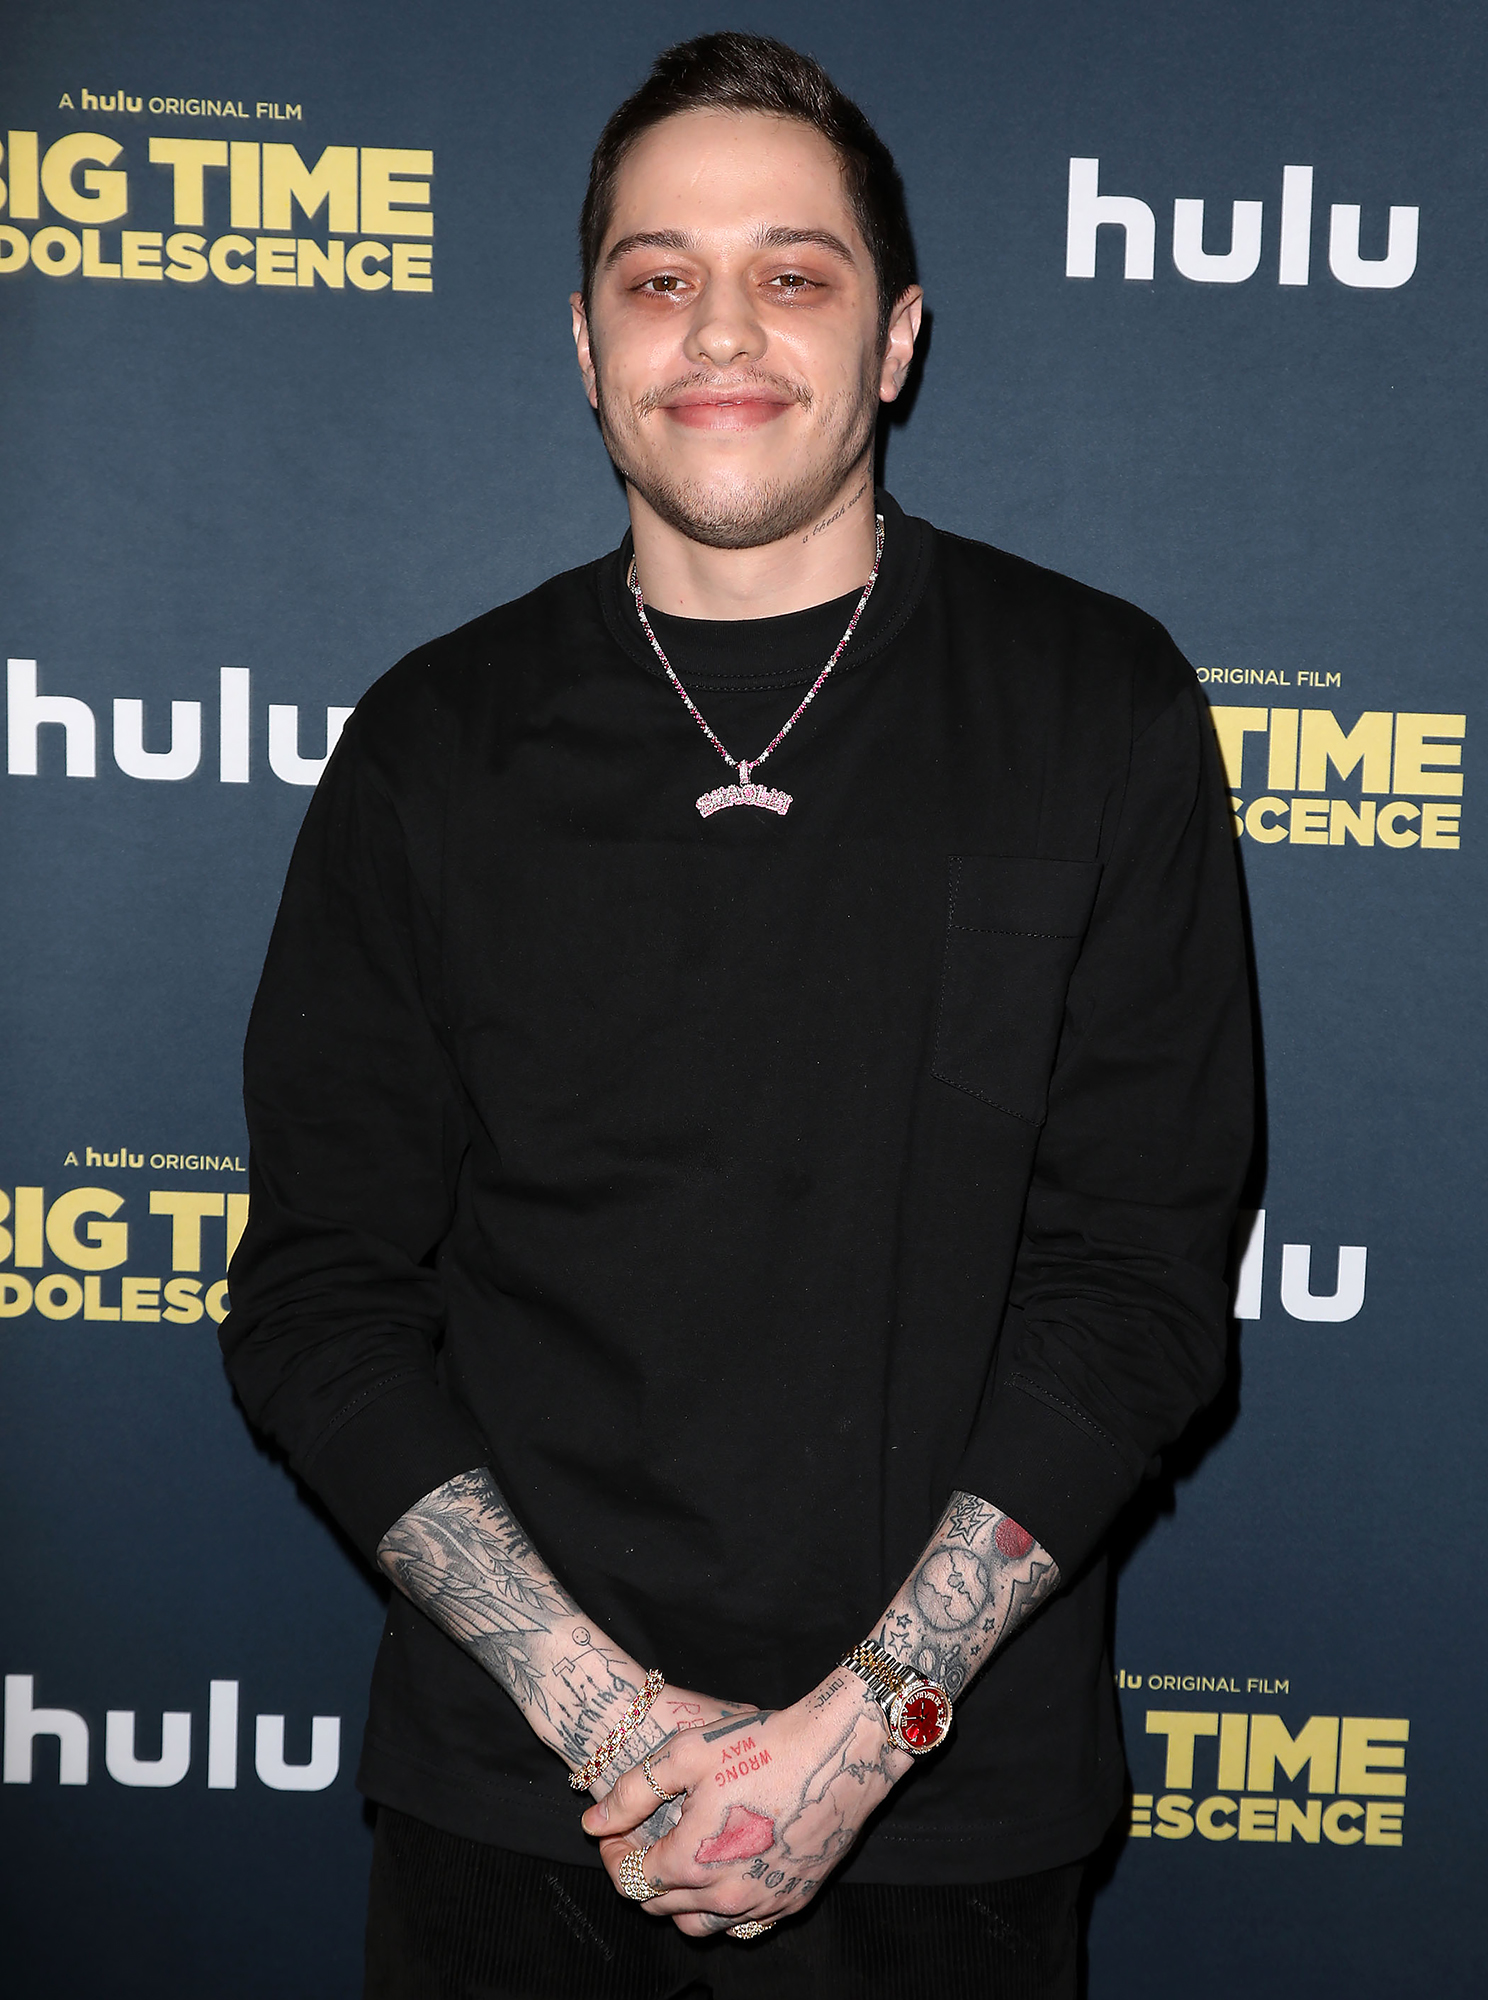 Pete Davidson Jokes He Is 'So Bored' While 'Off of Drugs' in Quarantine With His Mom